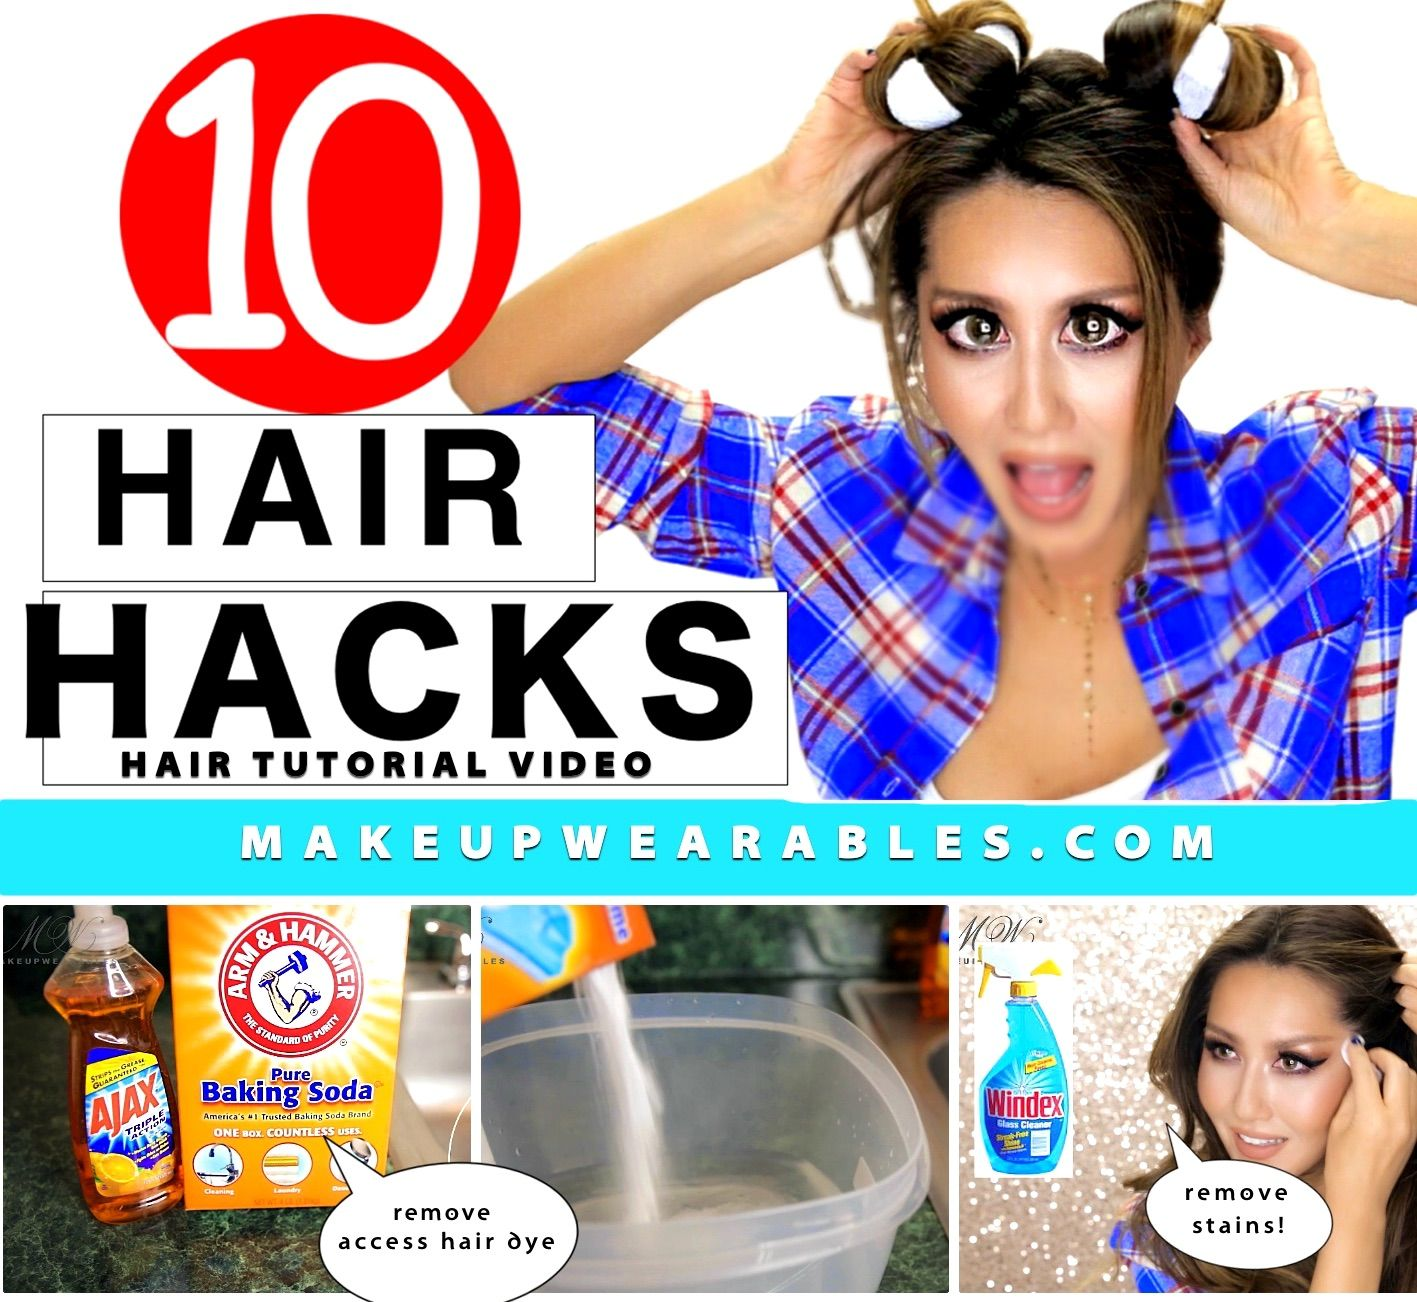 Simple Diy Hairstyles Everyday: 10 Everyday HAIR HACKS & Hairstyles Every Girl Should Know